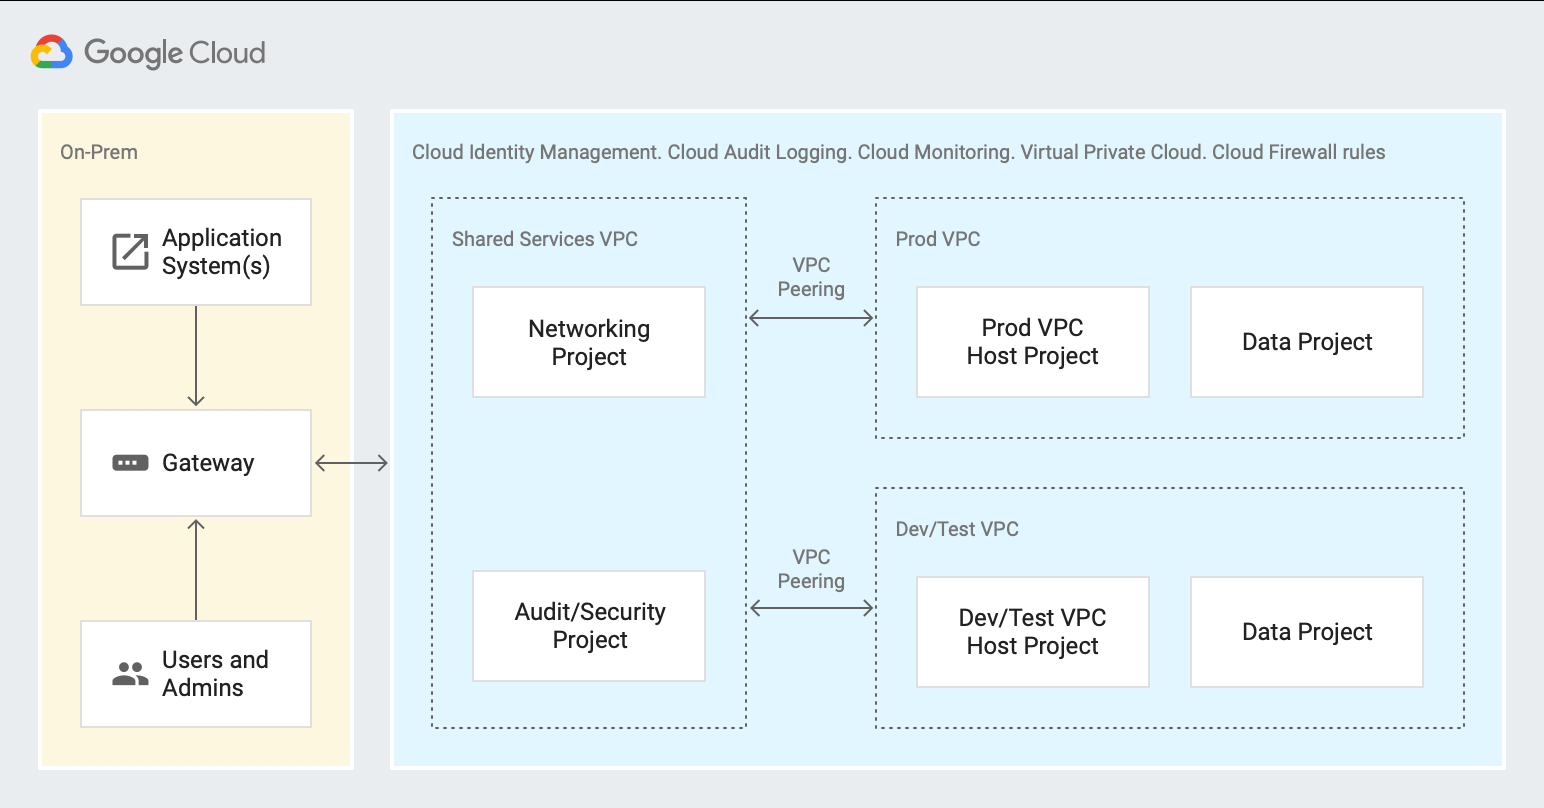 Diagram showing a separate VPC for prod and one for dev/test.